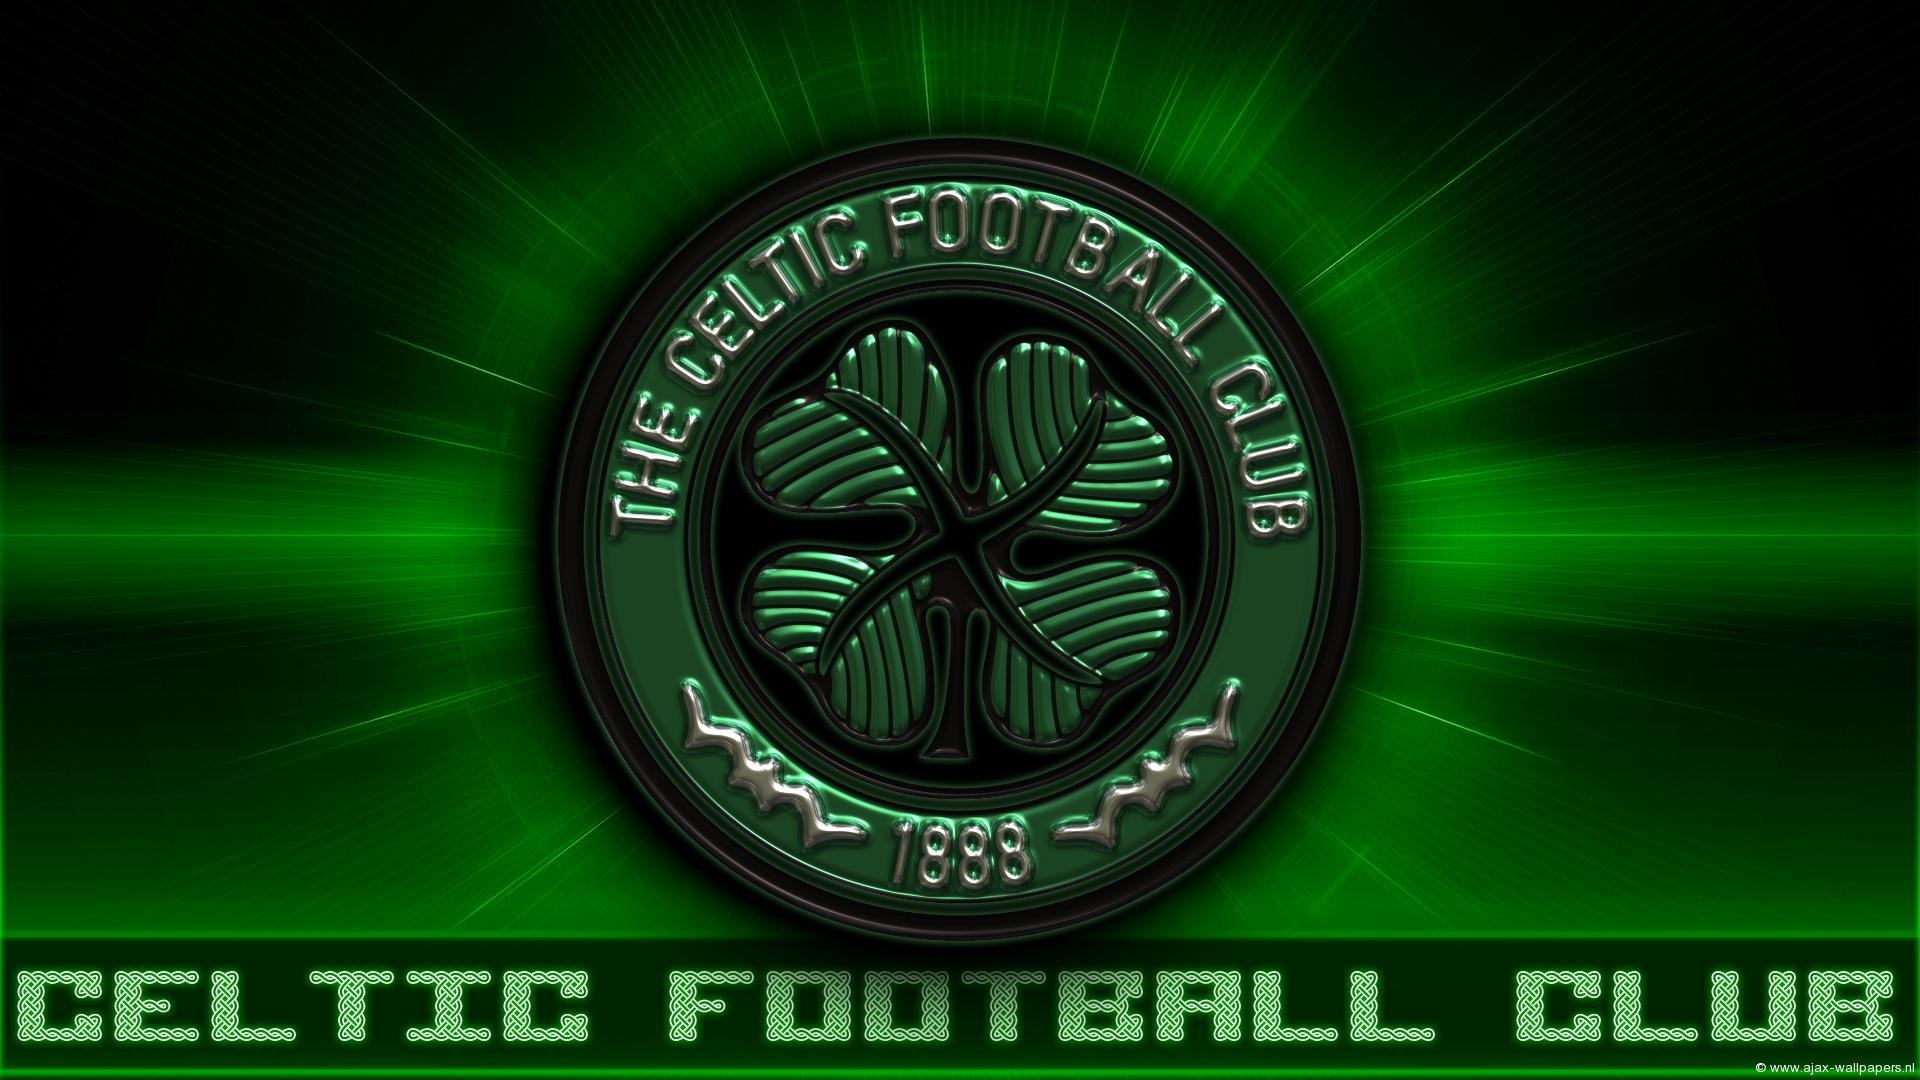 Celtic wallpaper ·① Download free stunning full HD ...